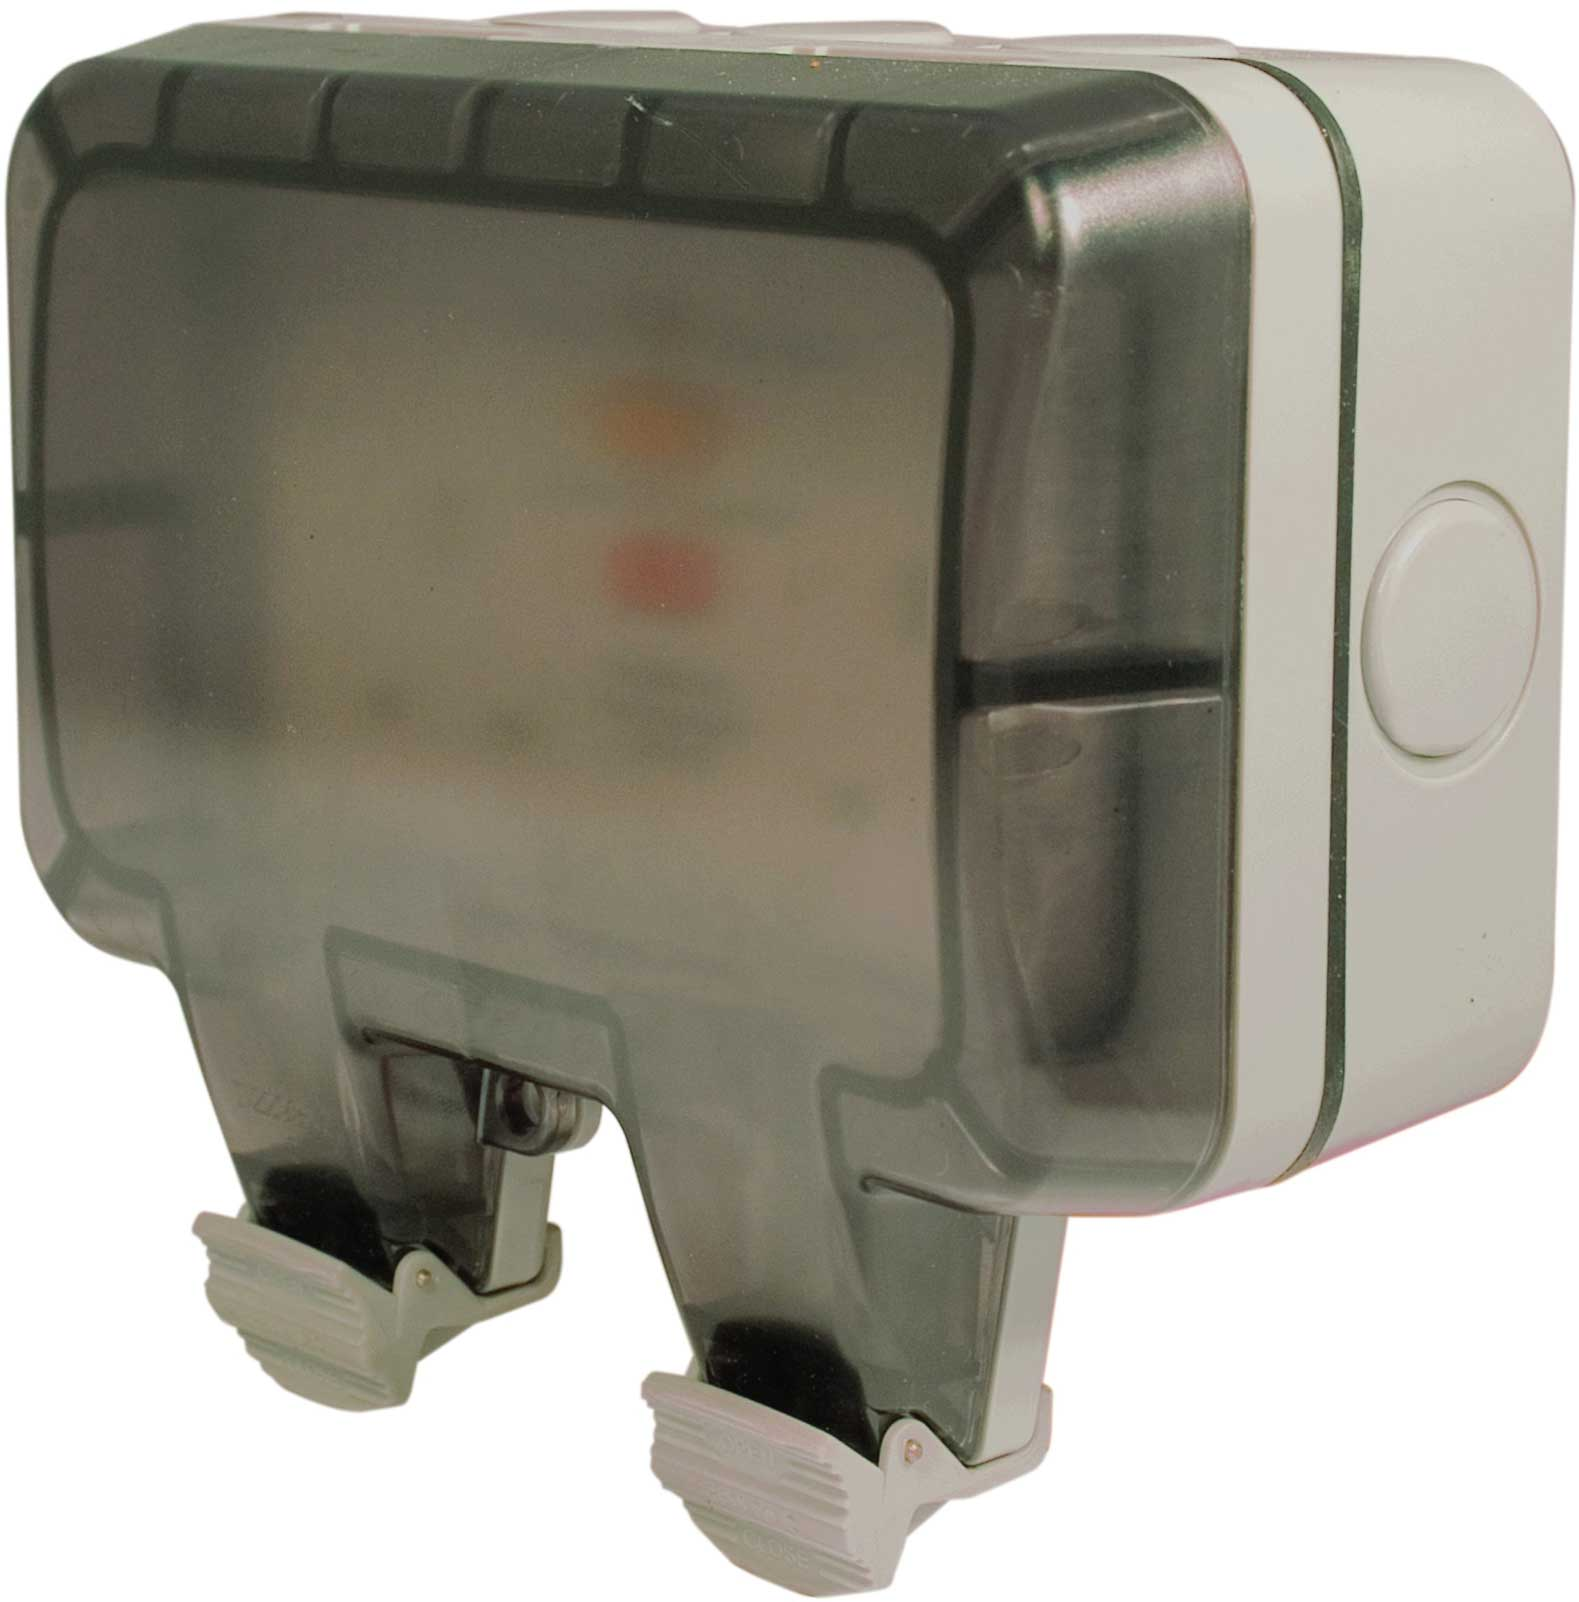 Masterplug Weatherproof Outdoor Rcd Protected Twin Socket